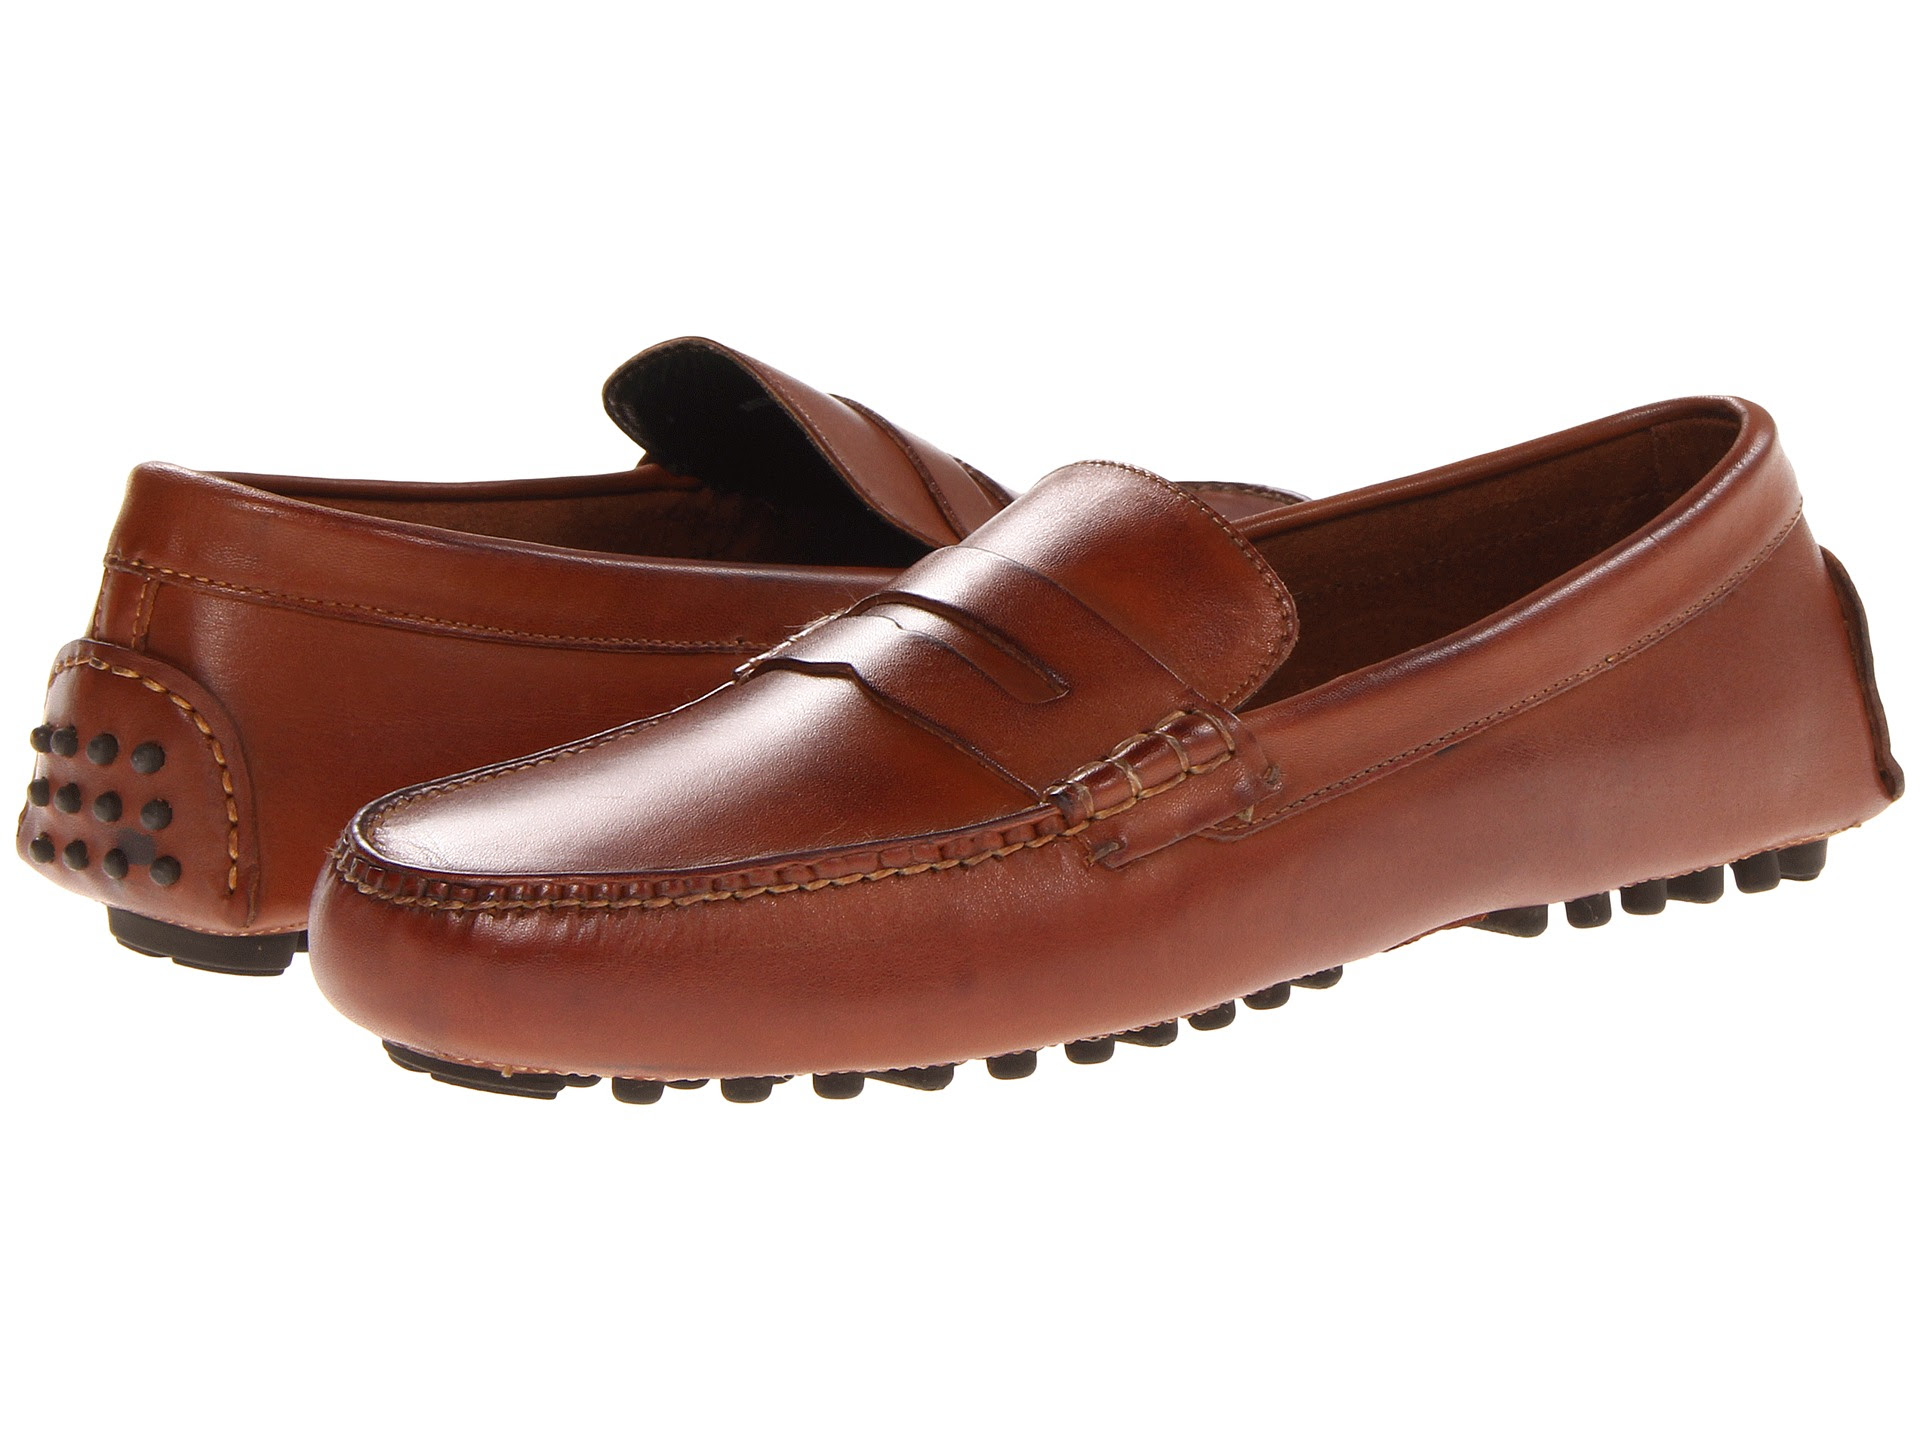 Cole Haan Air Grant Penny Loafer, Shoes   Shipped Free at ...